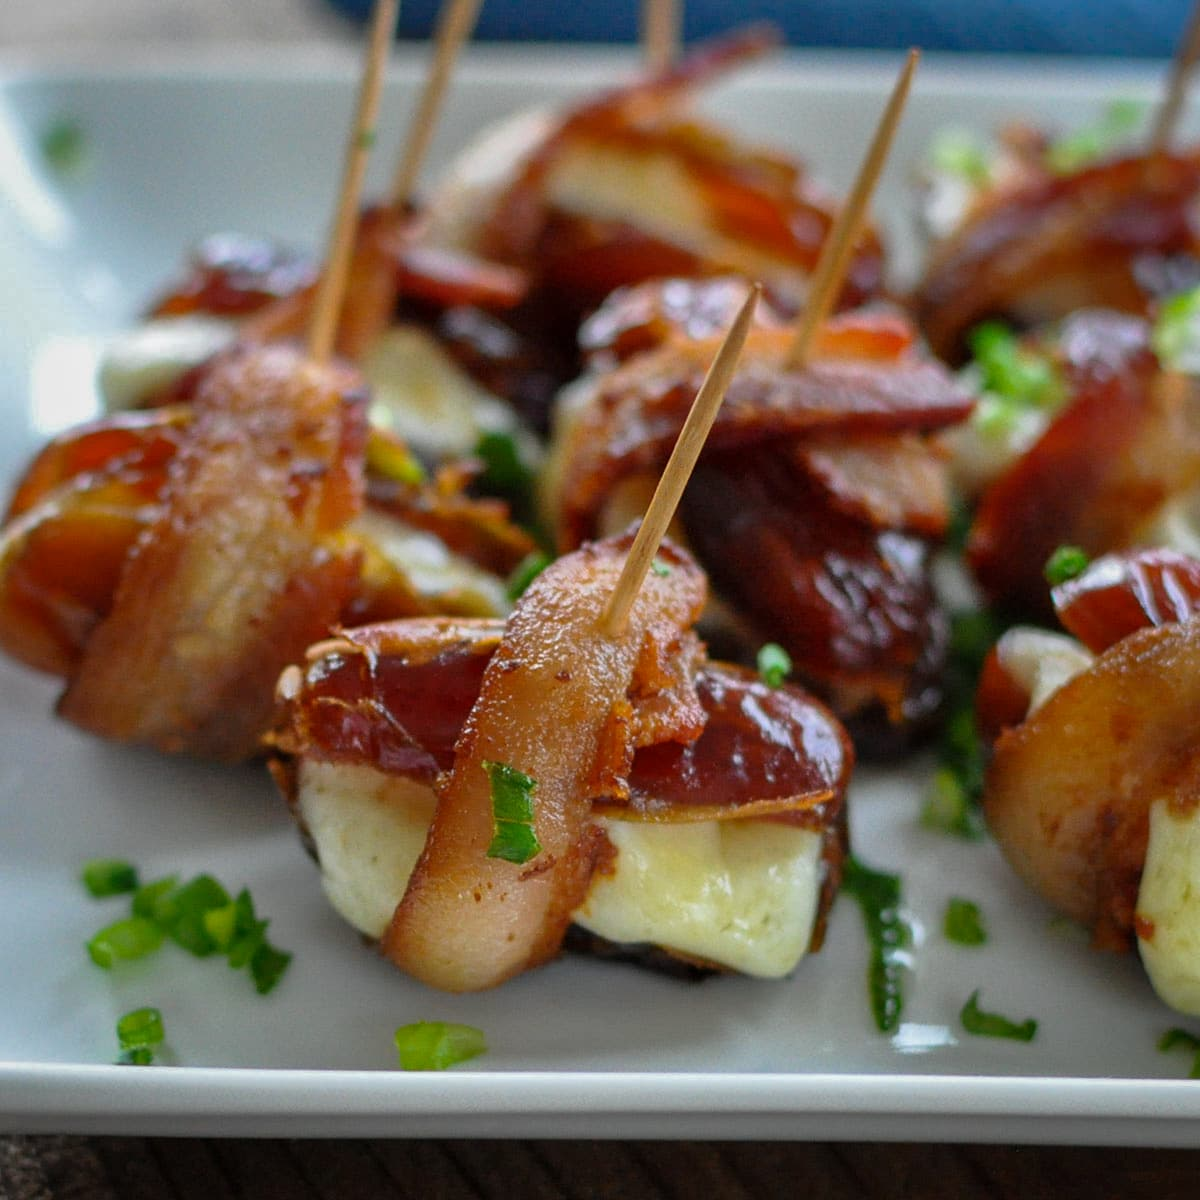 dates stuffed with cheese wrapped in bacon on a plate